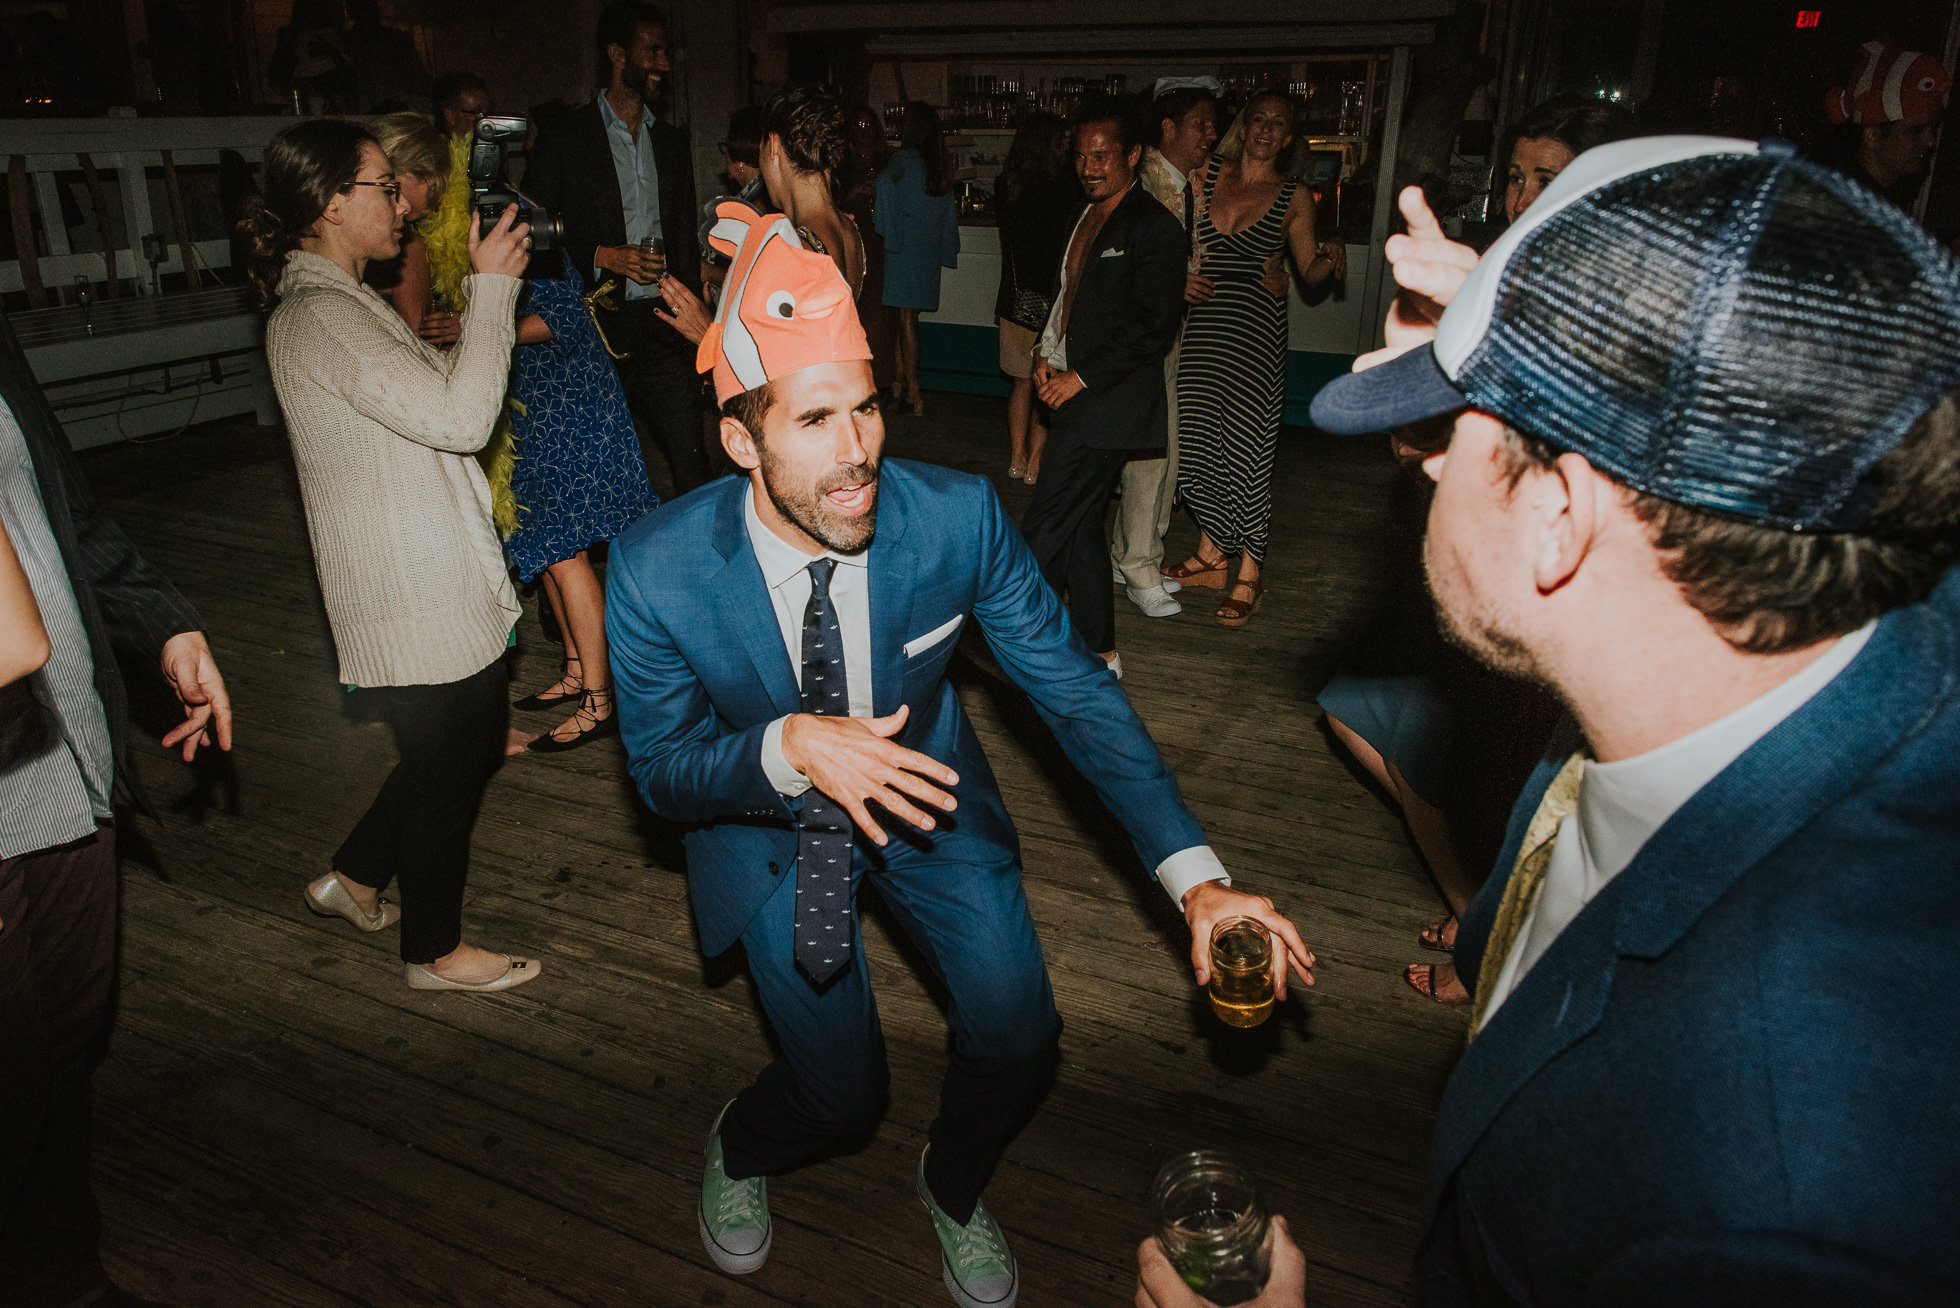 groom with funny hat at reception Montauk wedding photographed by Traverse the Tides